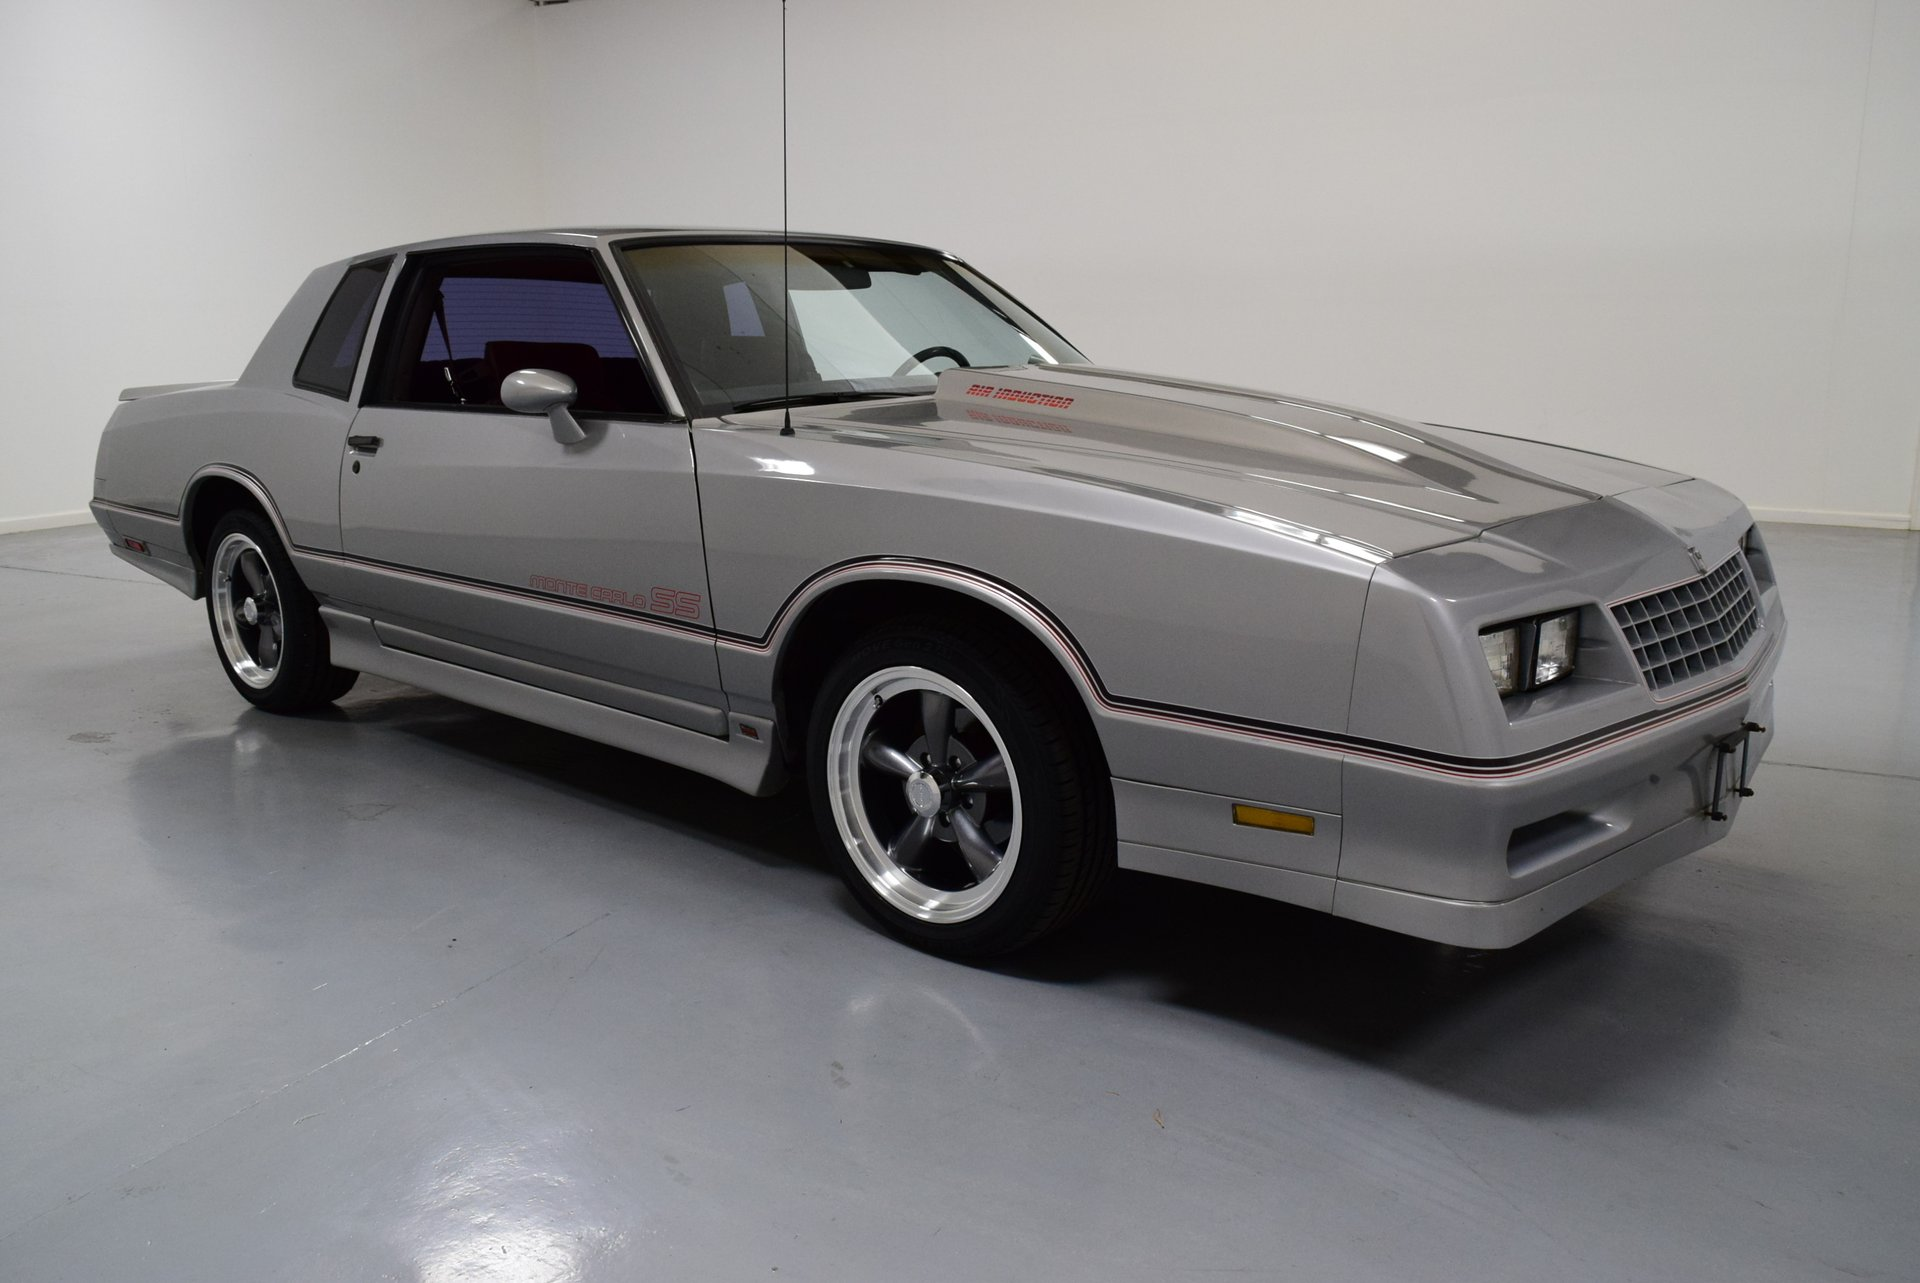 1985 Chevrolet Monte Carlo SS for sale #74697 | MCG